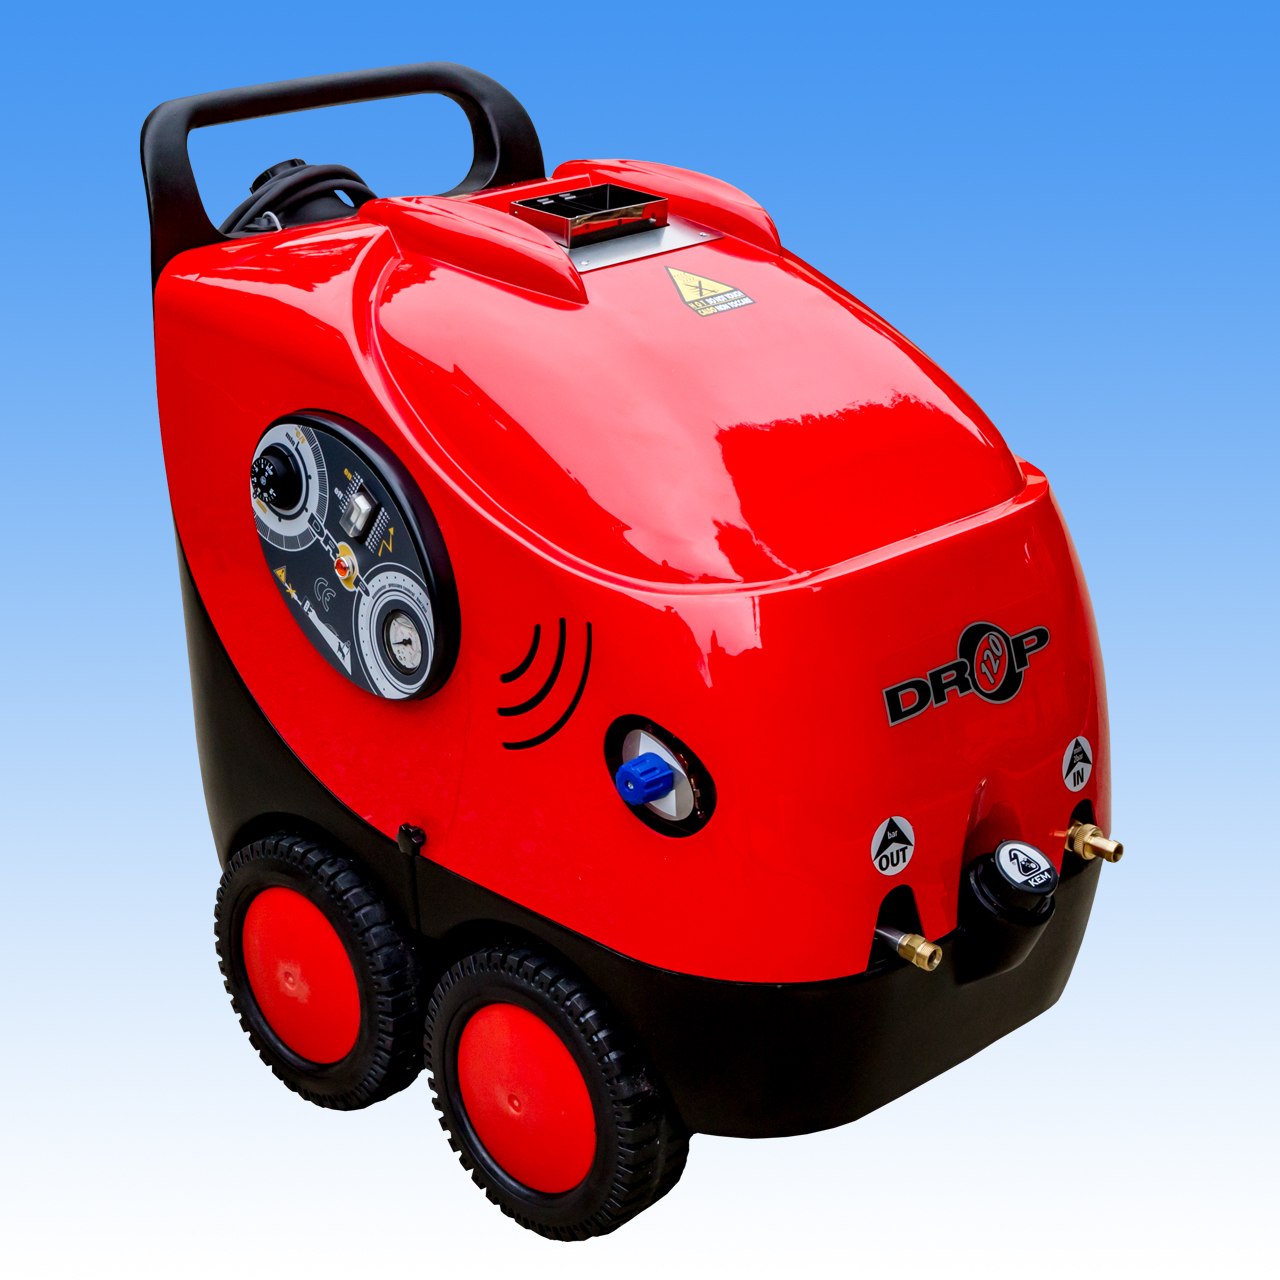 MAER  DROP 120 | 11  | HOT Water High Pressure Washer Cleaner  | 1750psi | 11 L|Min | 2.2Kw Electric